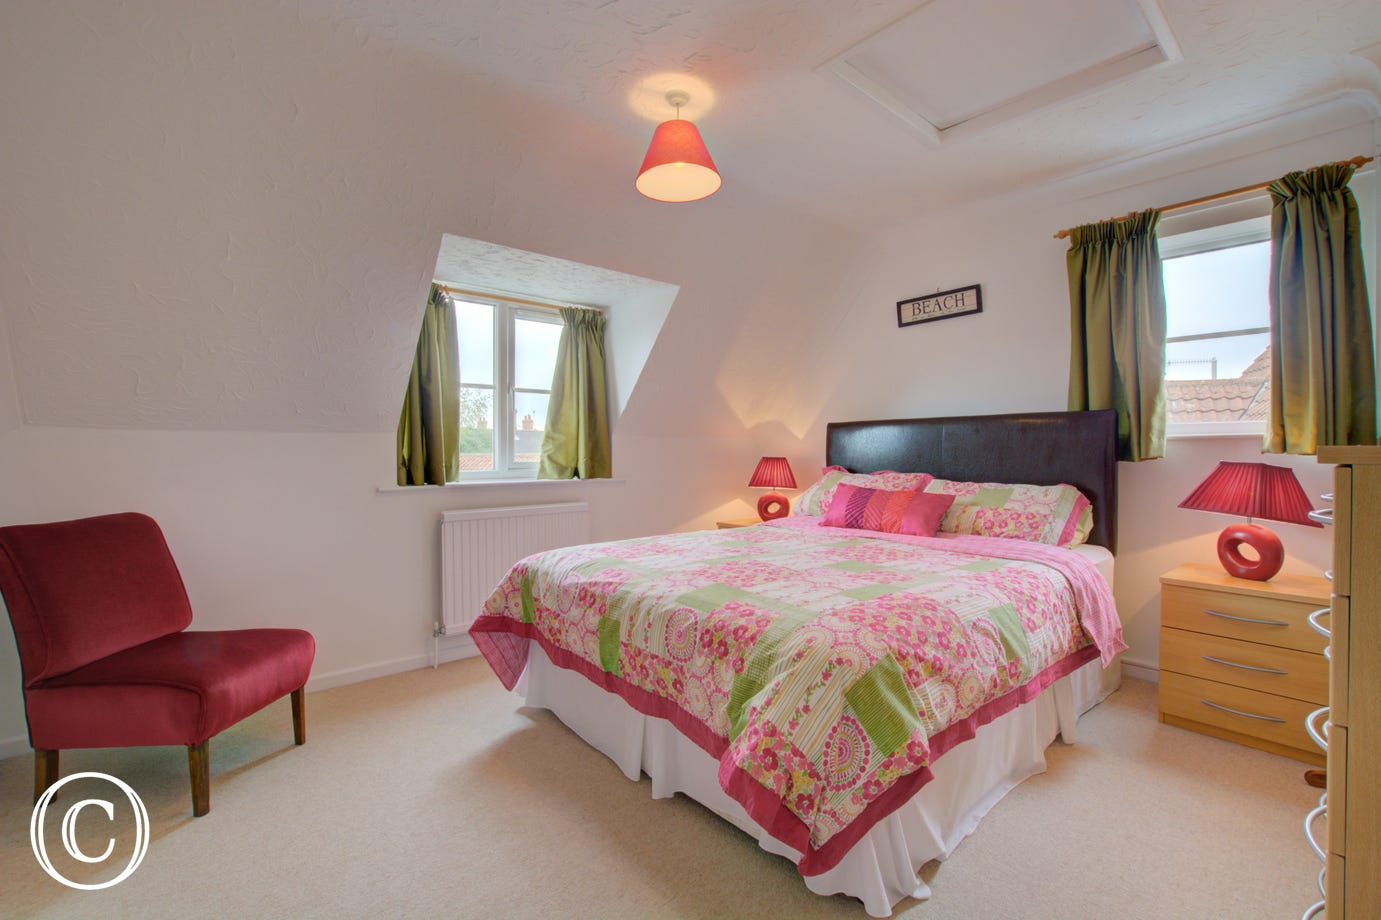 Bedroom two also offers a double bed and is attractively decorated.